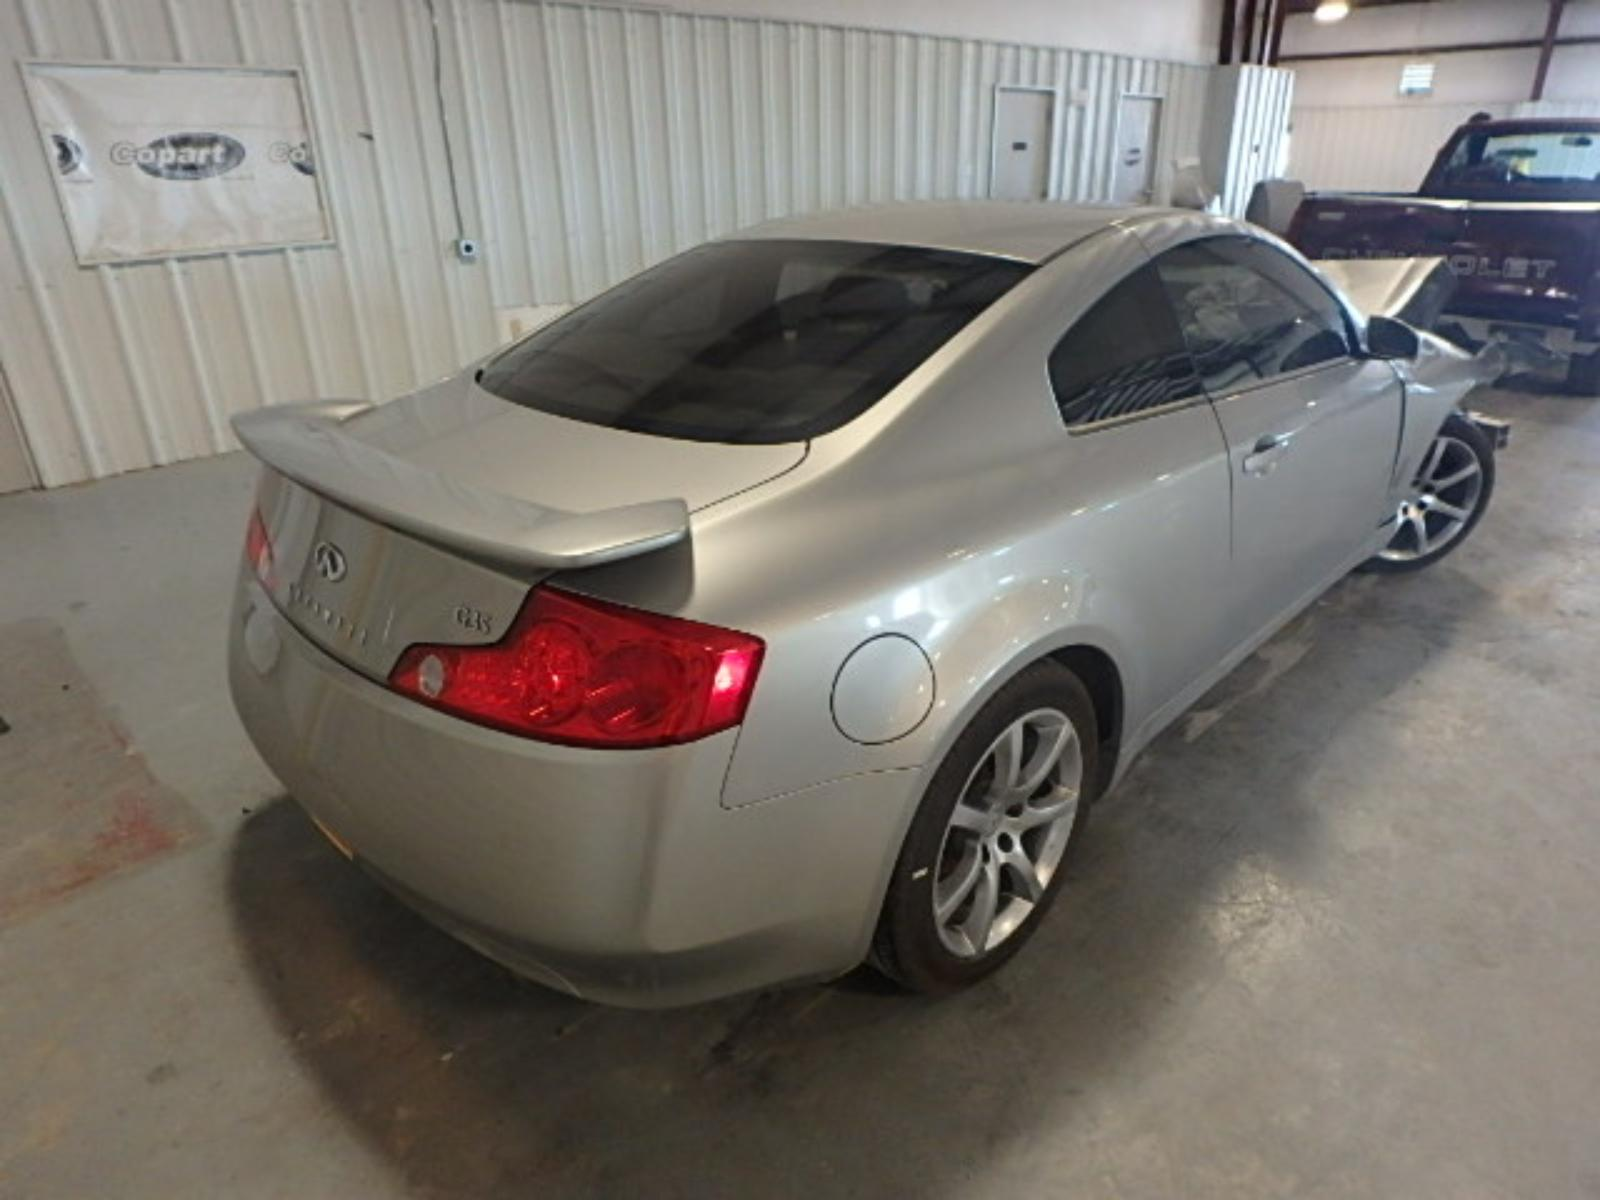 infinity detailing car a net mirror progress forum infiniti care shit for coupe holy sale its paint restoration